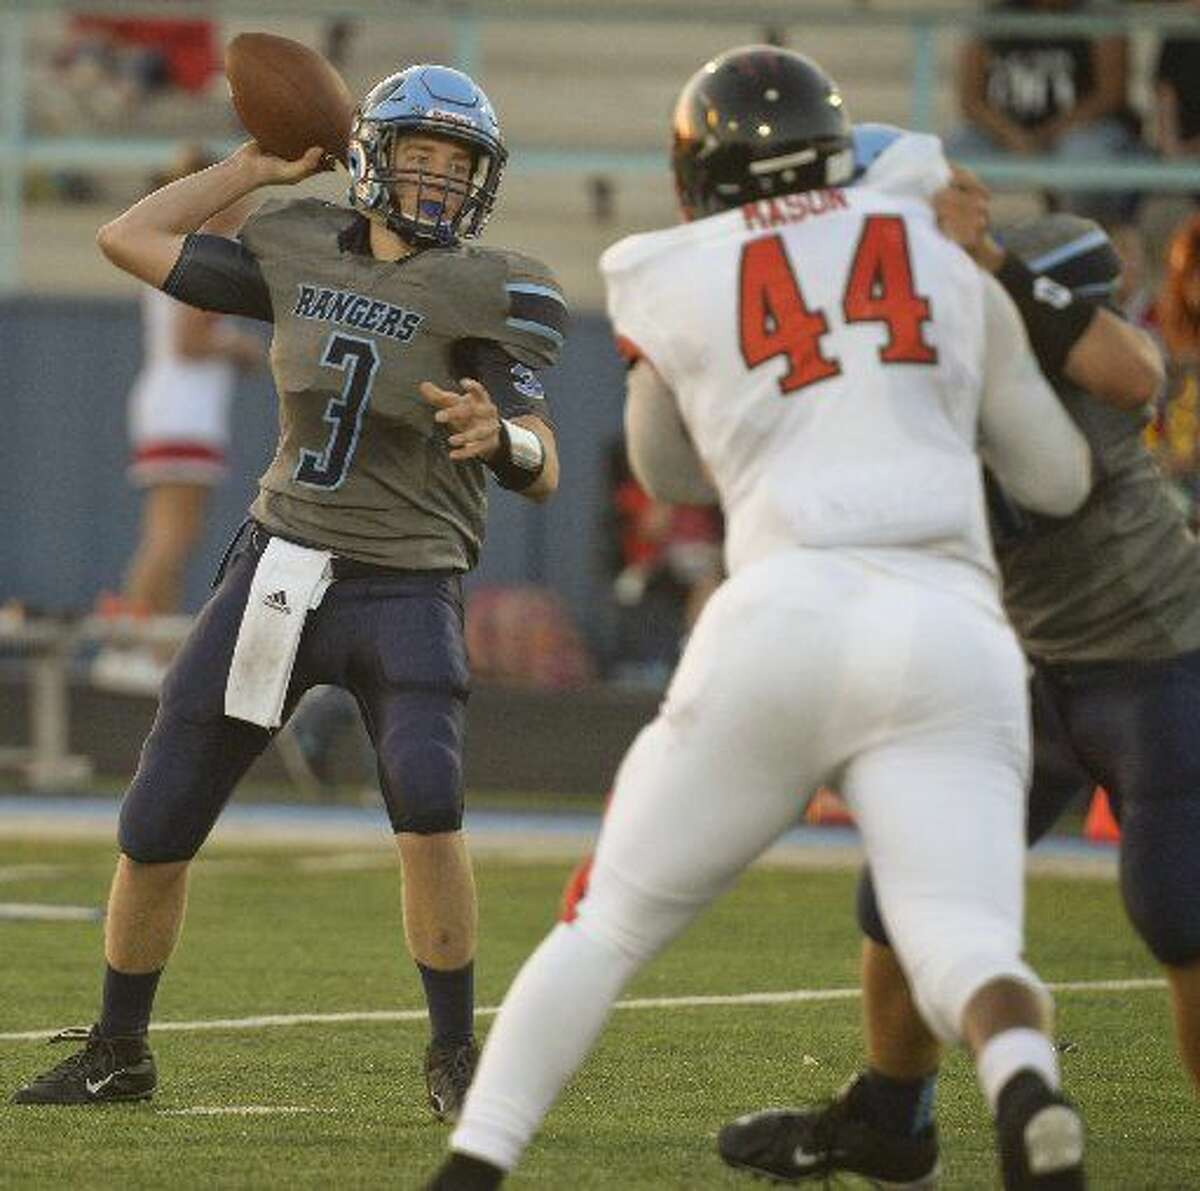 Greenwood's Ben Brockman gets ready to throw a pass against Brownfield on Friday, Sept. 4 at J.M. King Memorial Stadium.